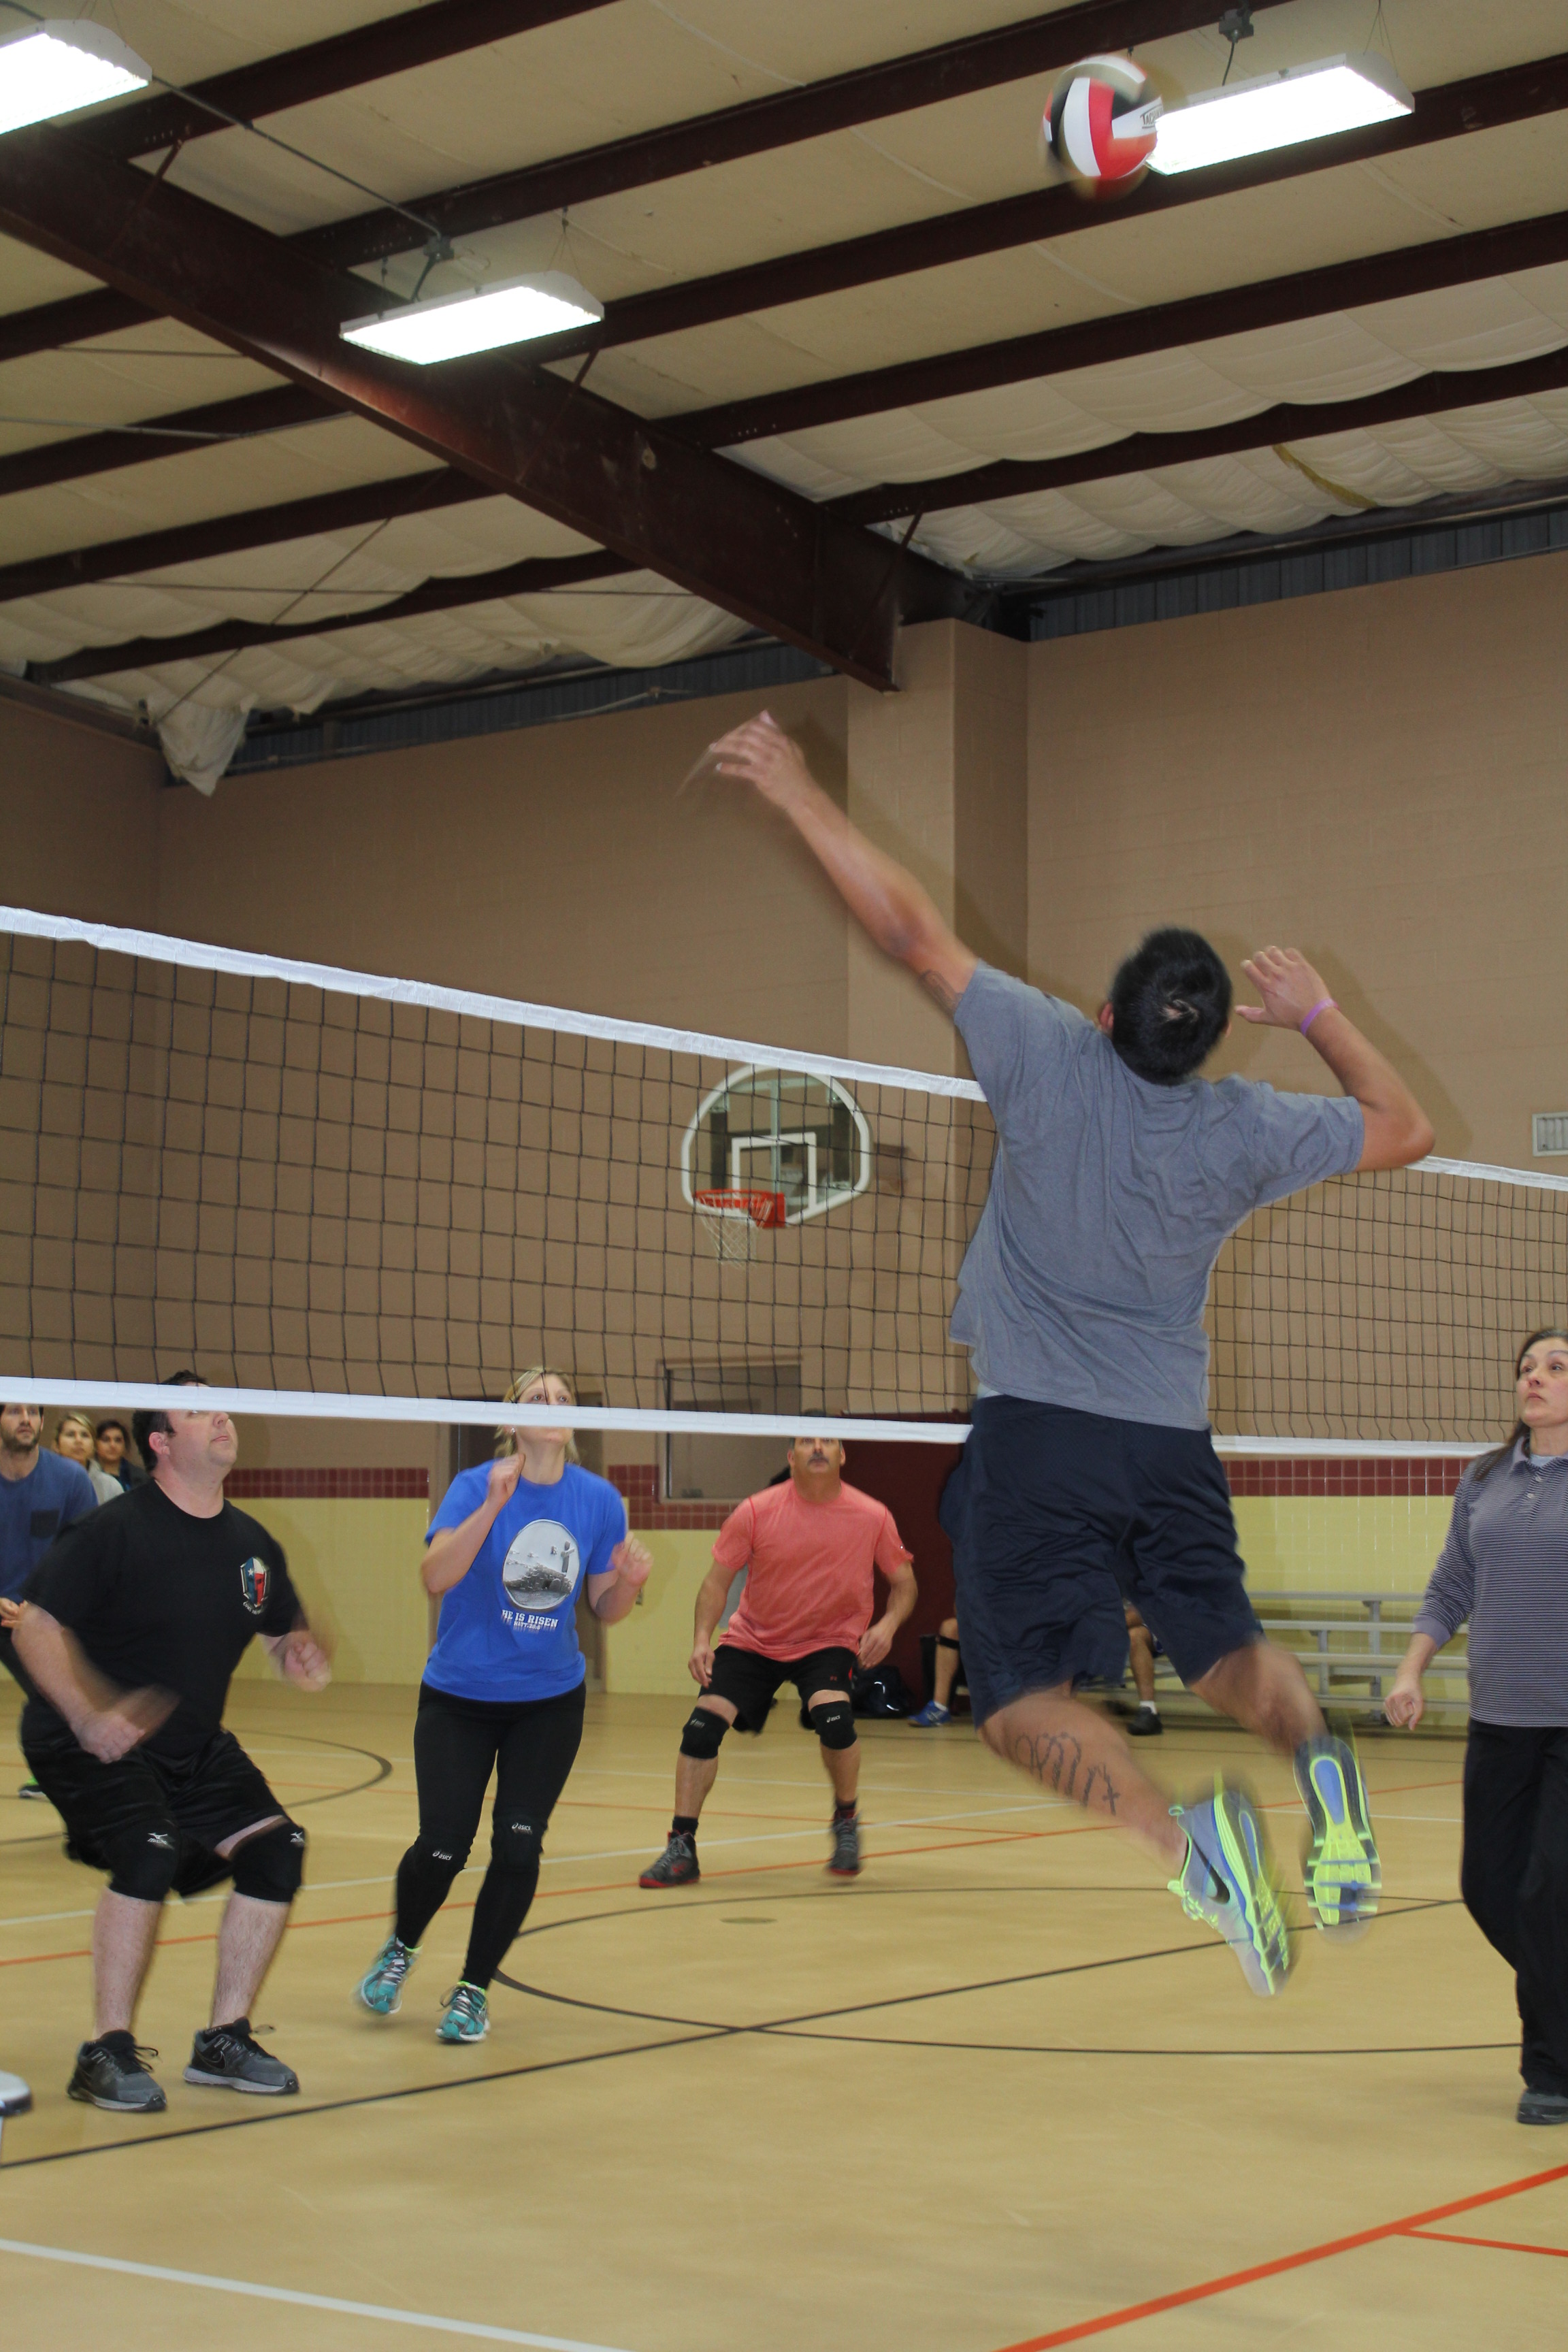 Man jumping in front of volleyball net to hit volleyball in indoor court